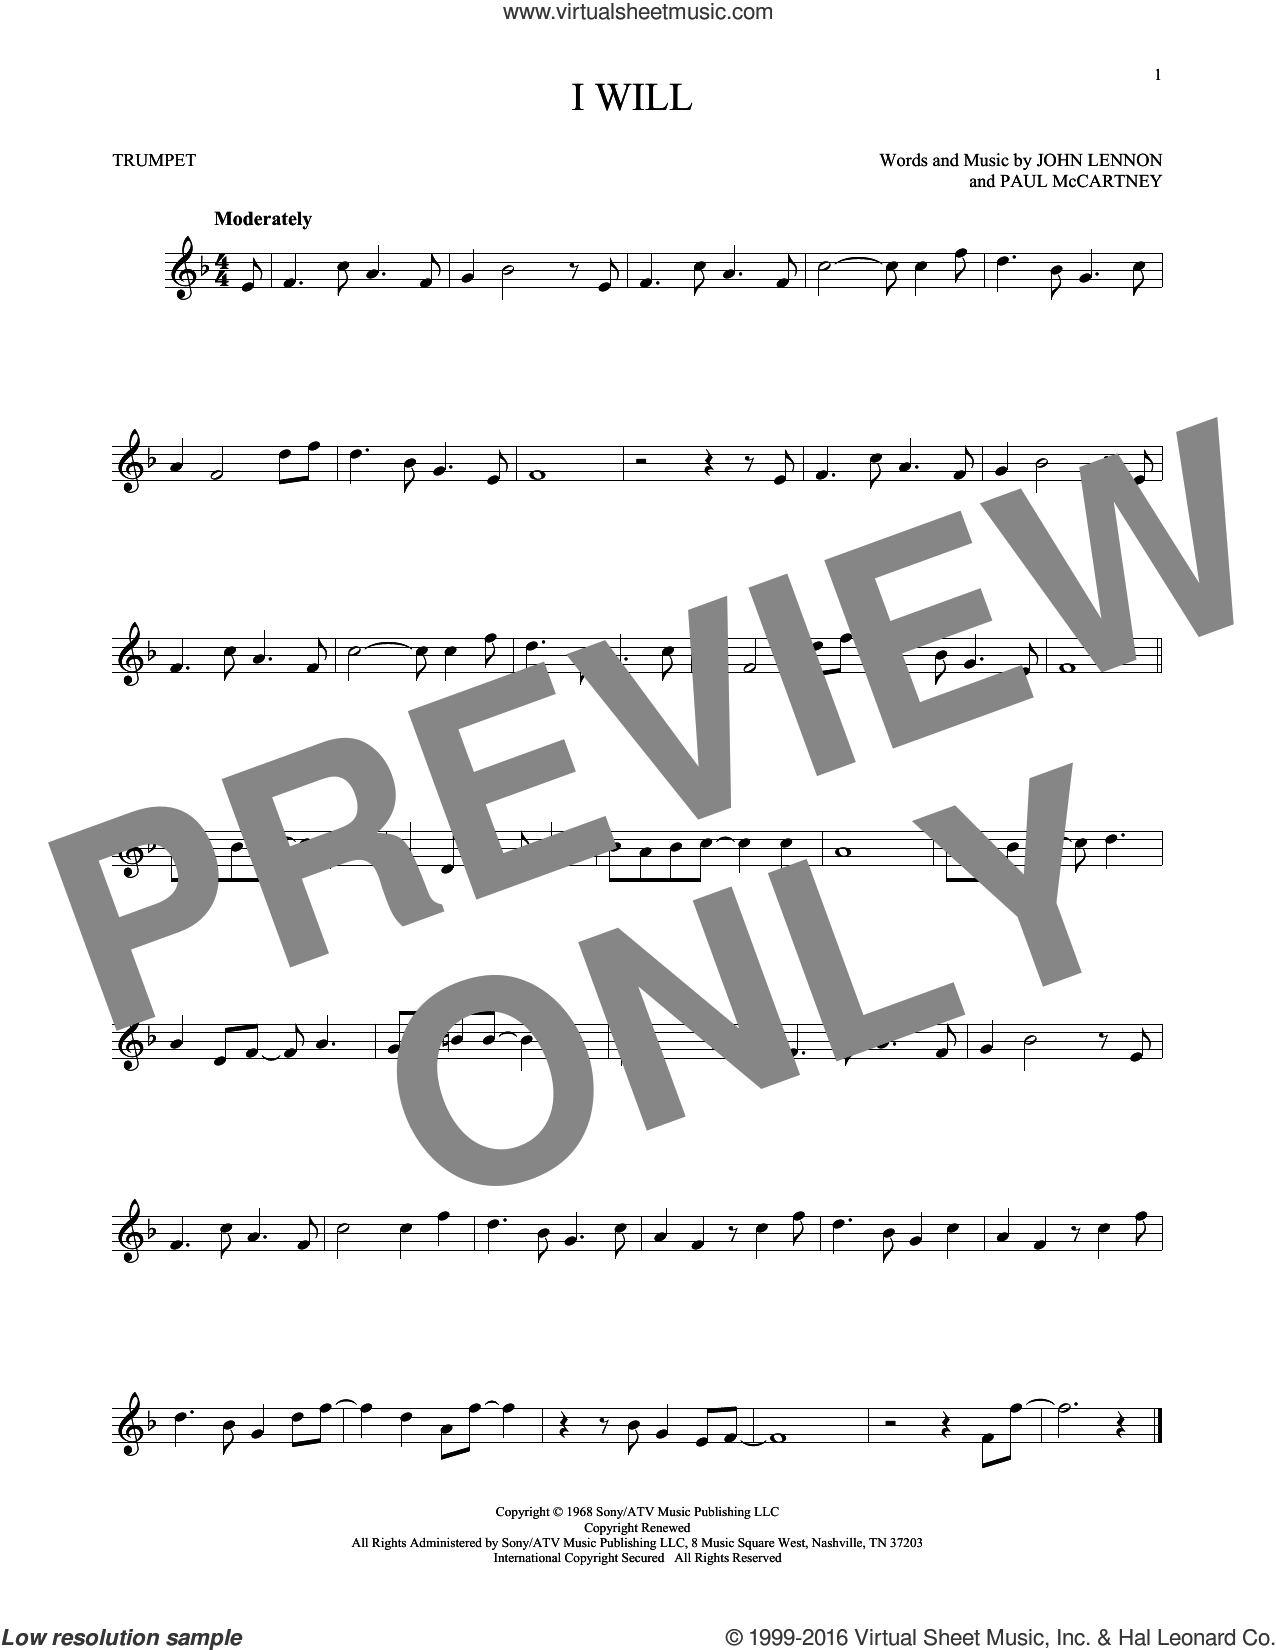 I Will sheet music for trumpet solo by The Beatles, John Lennon and Paul McCartney, intermediate skill level